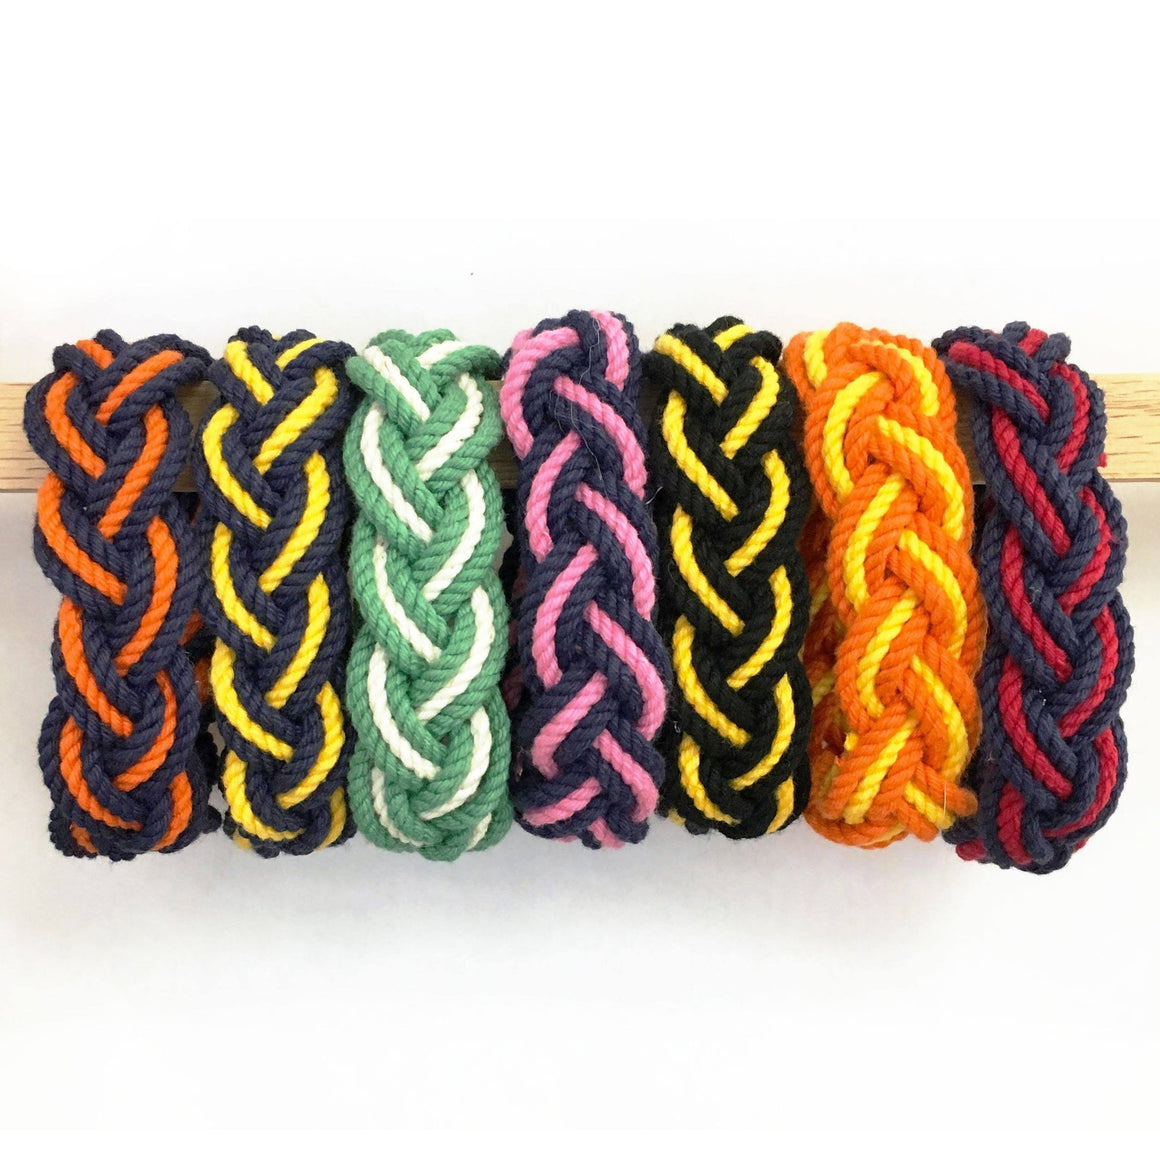 Striped Sailor Bracelet, Custom Colors - Choose Your Own